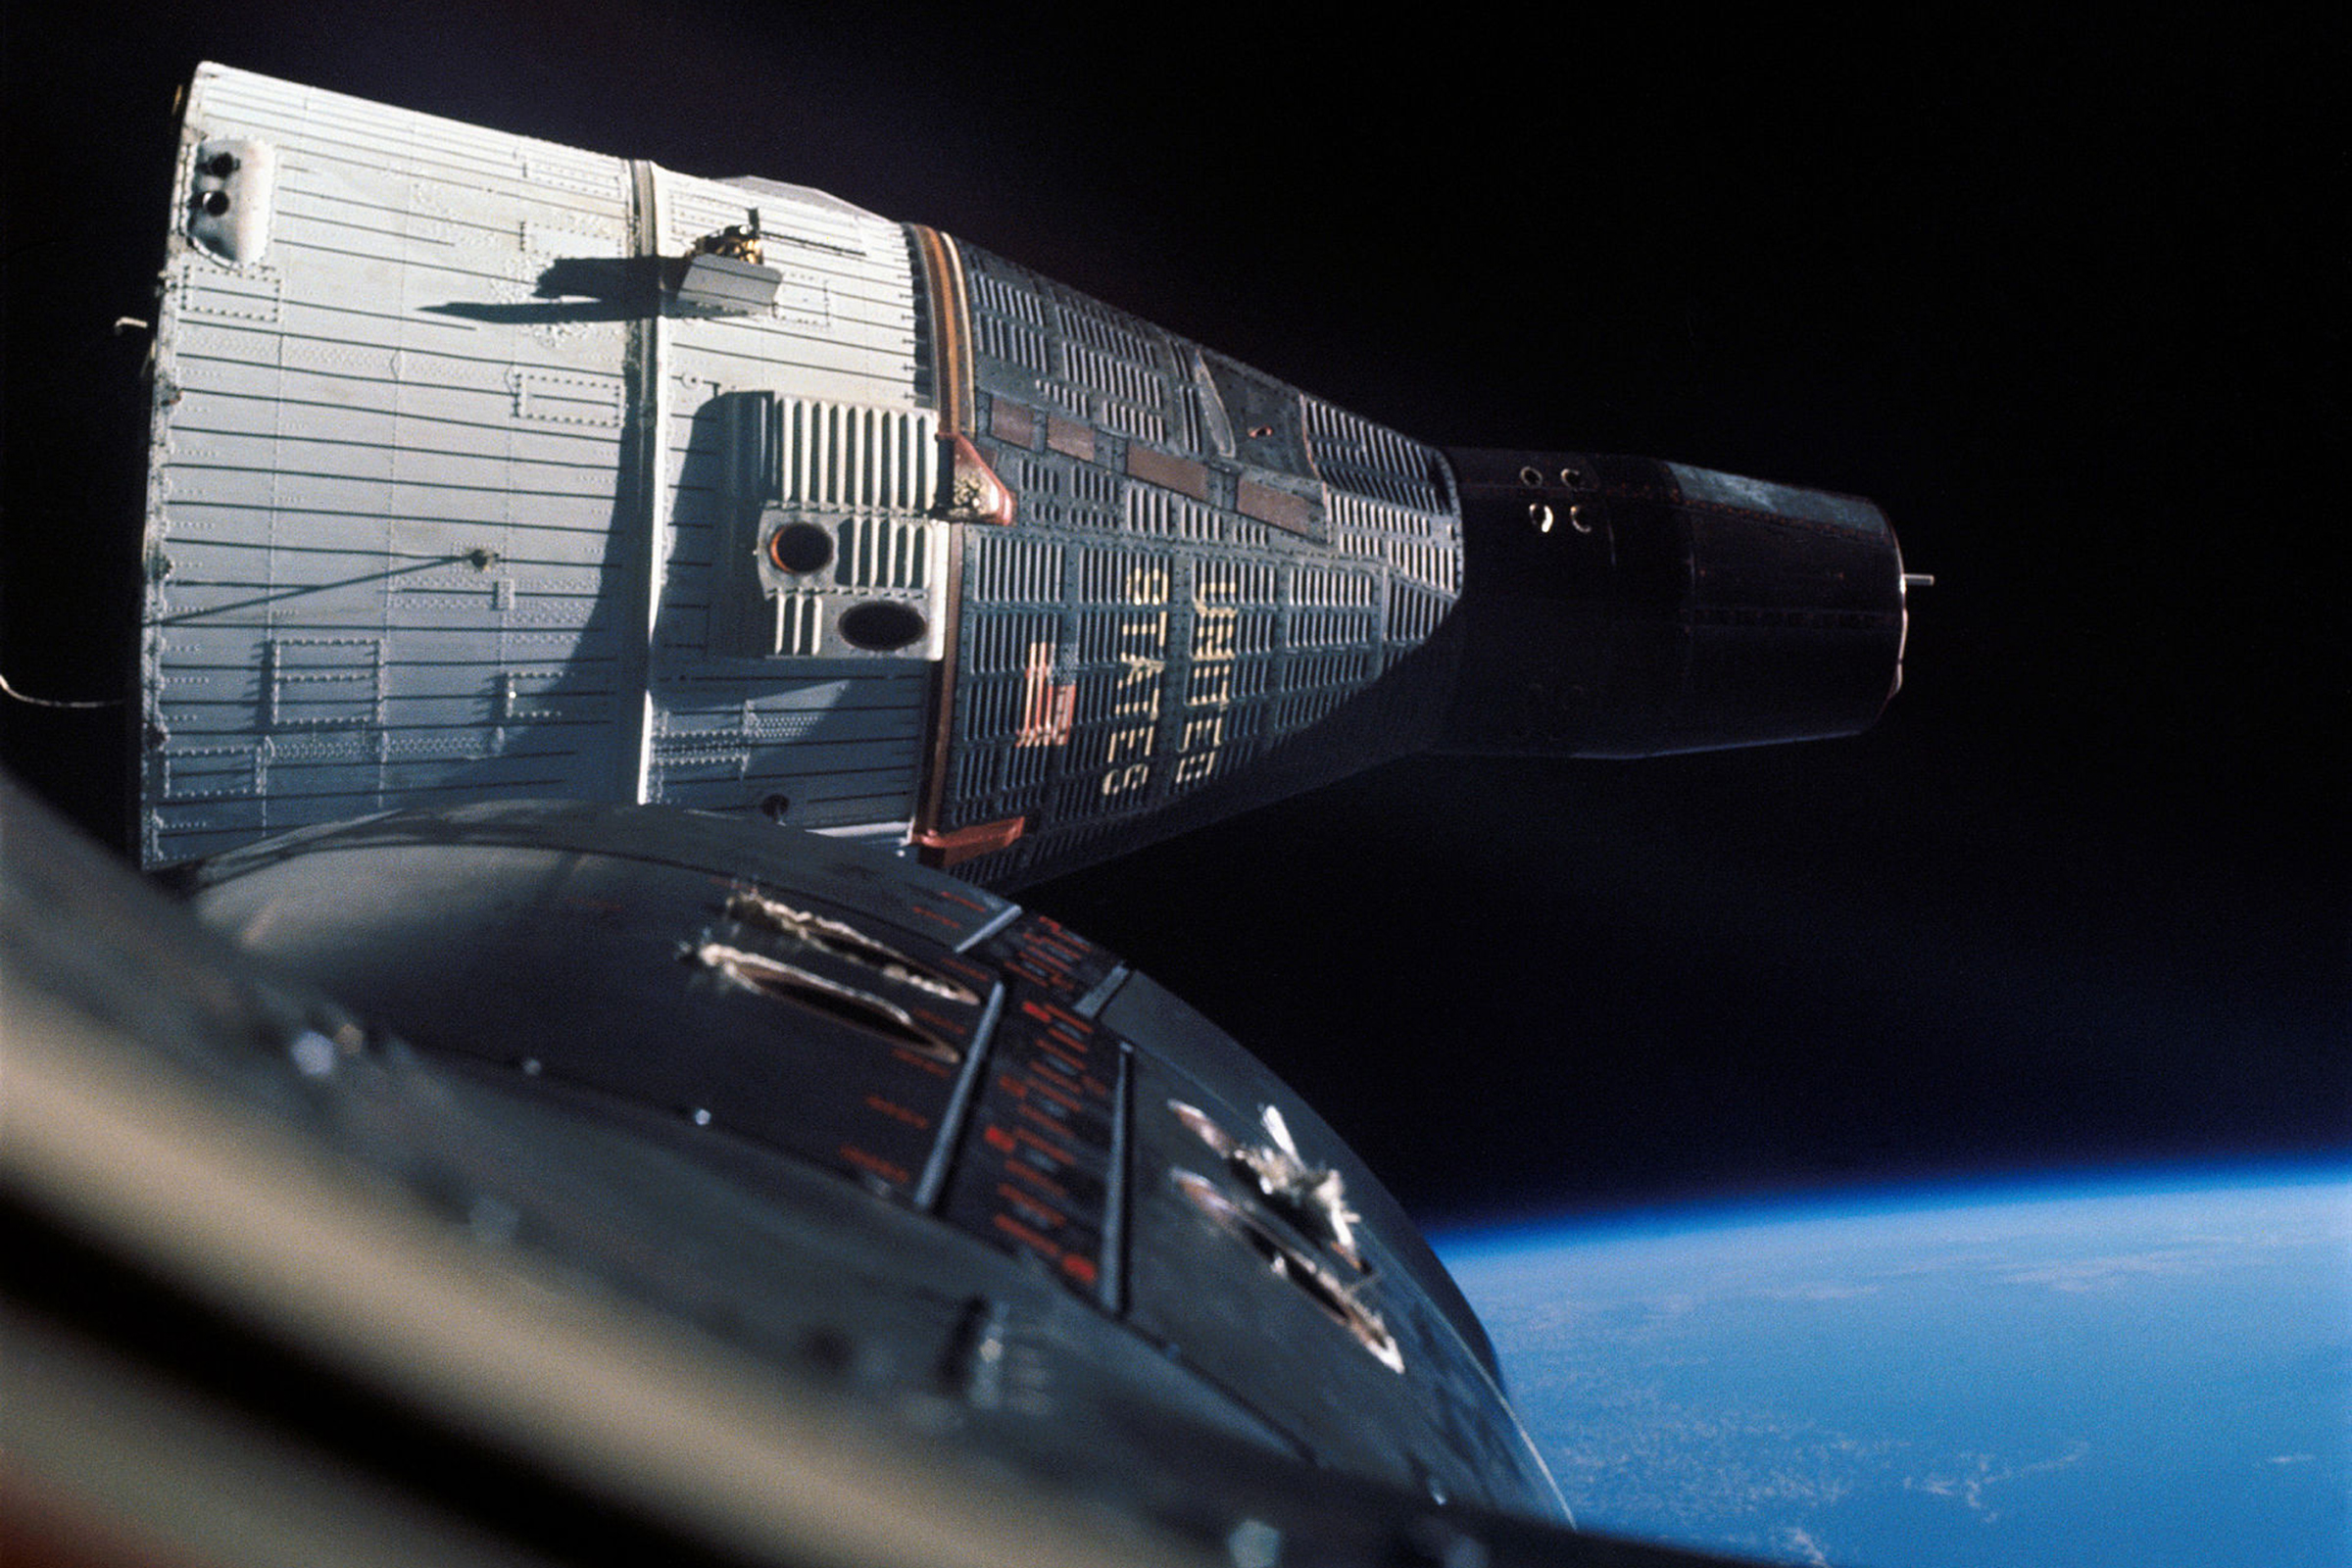 Project Gemini launched pairs of astronauts in each capsule, to practice mission critical operations prior to the Apollo program. Here Gemini 6 and 7 rendezvous in Earth orbit, in December 1965.